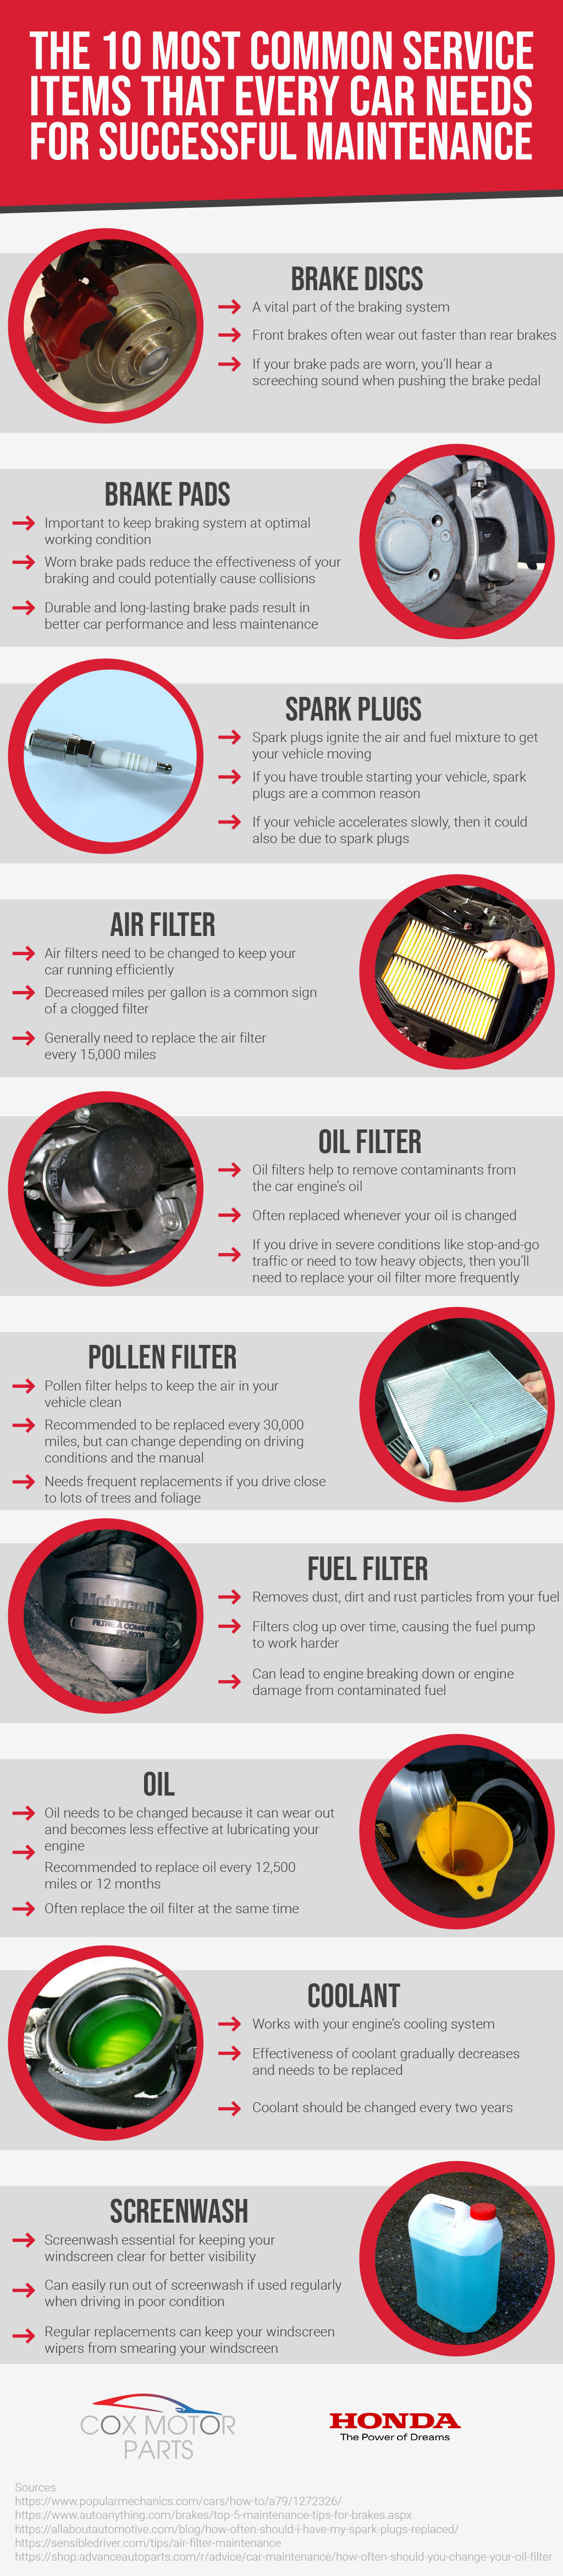 Top 10 Honda Service Items Infographic